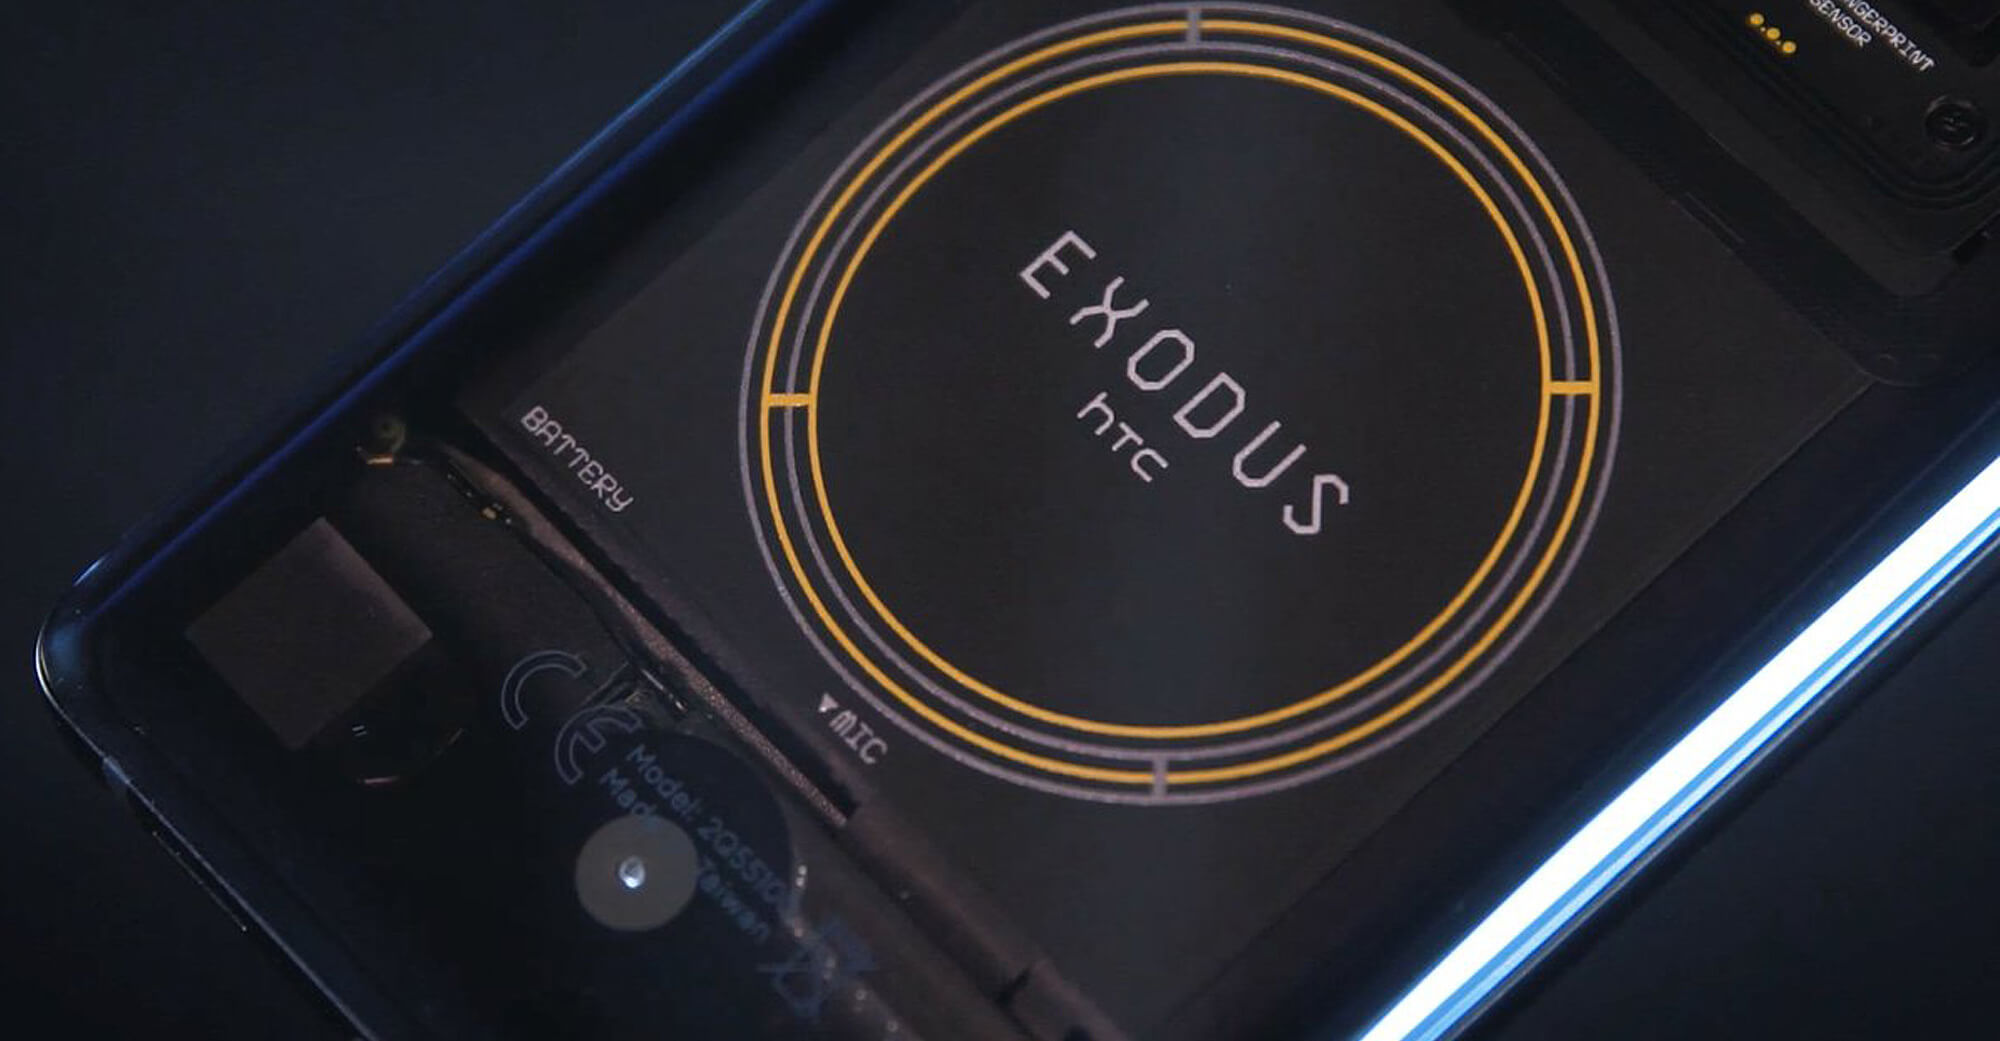 HTC's Exodus phone can only be bought with Bitcoin and Ethereum